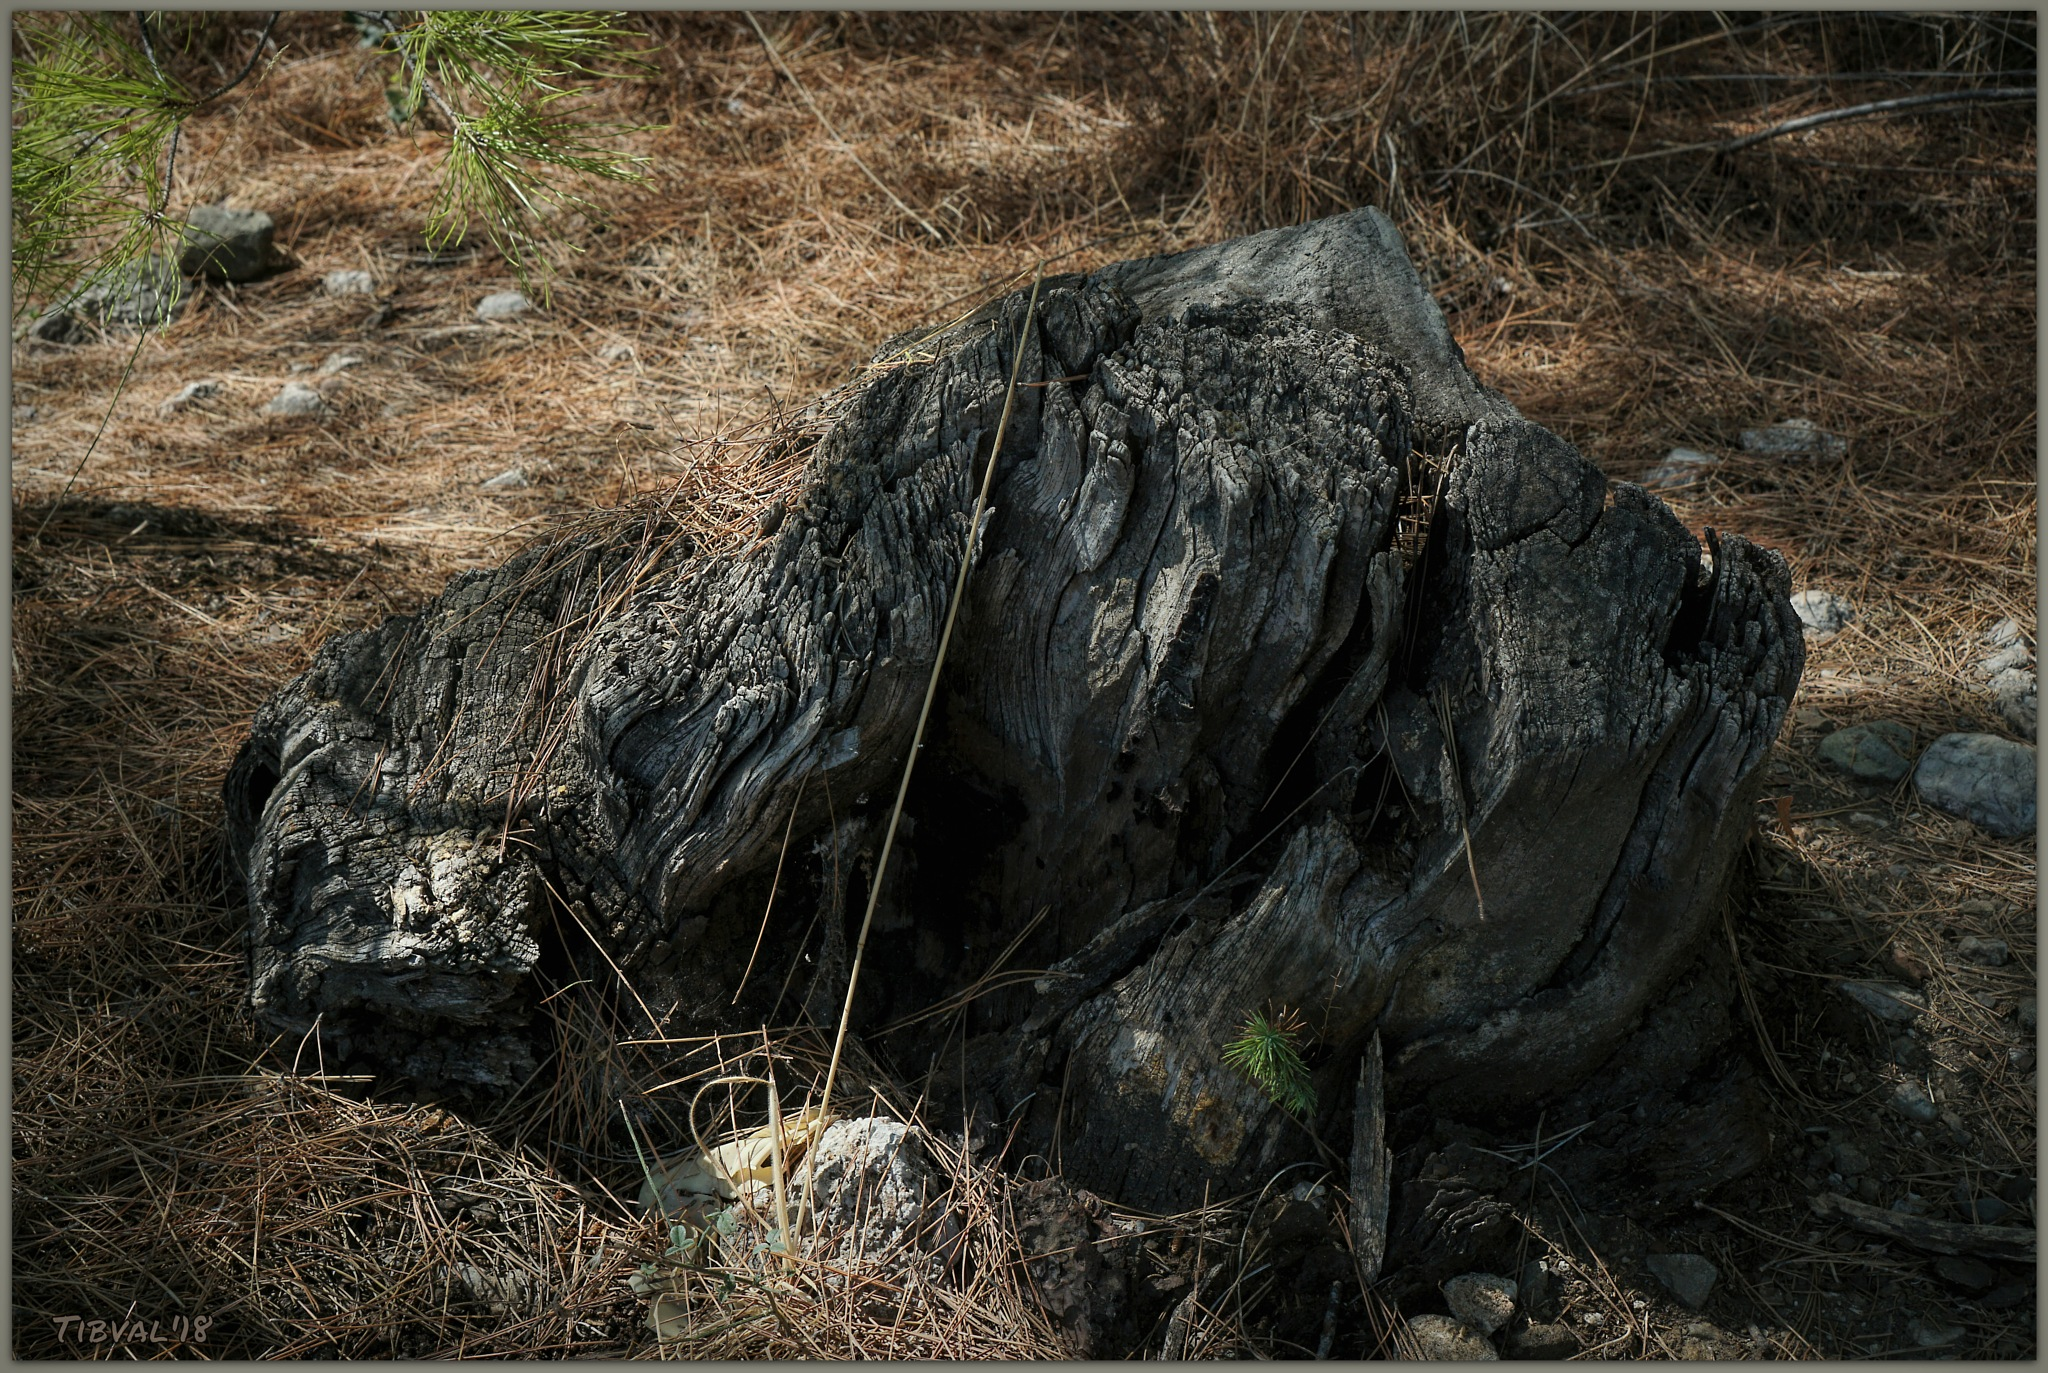 Tree stump by Tibval